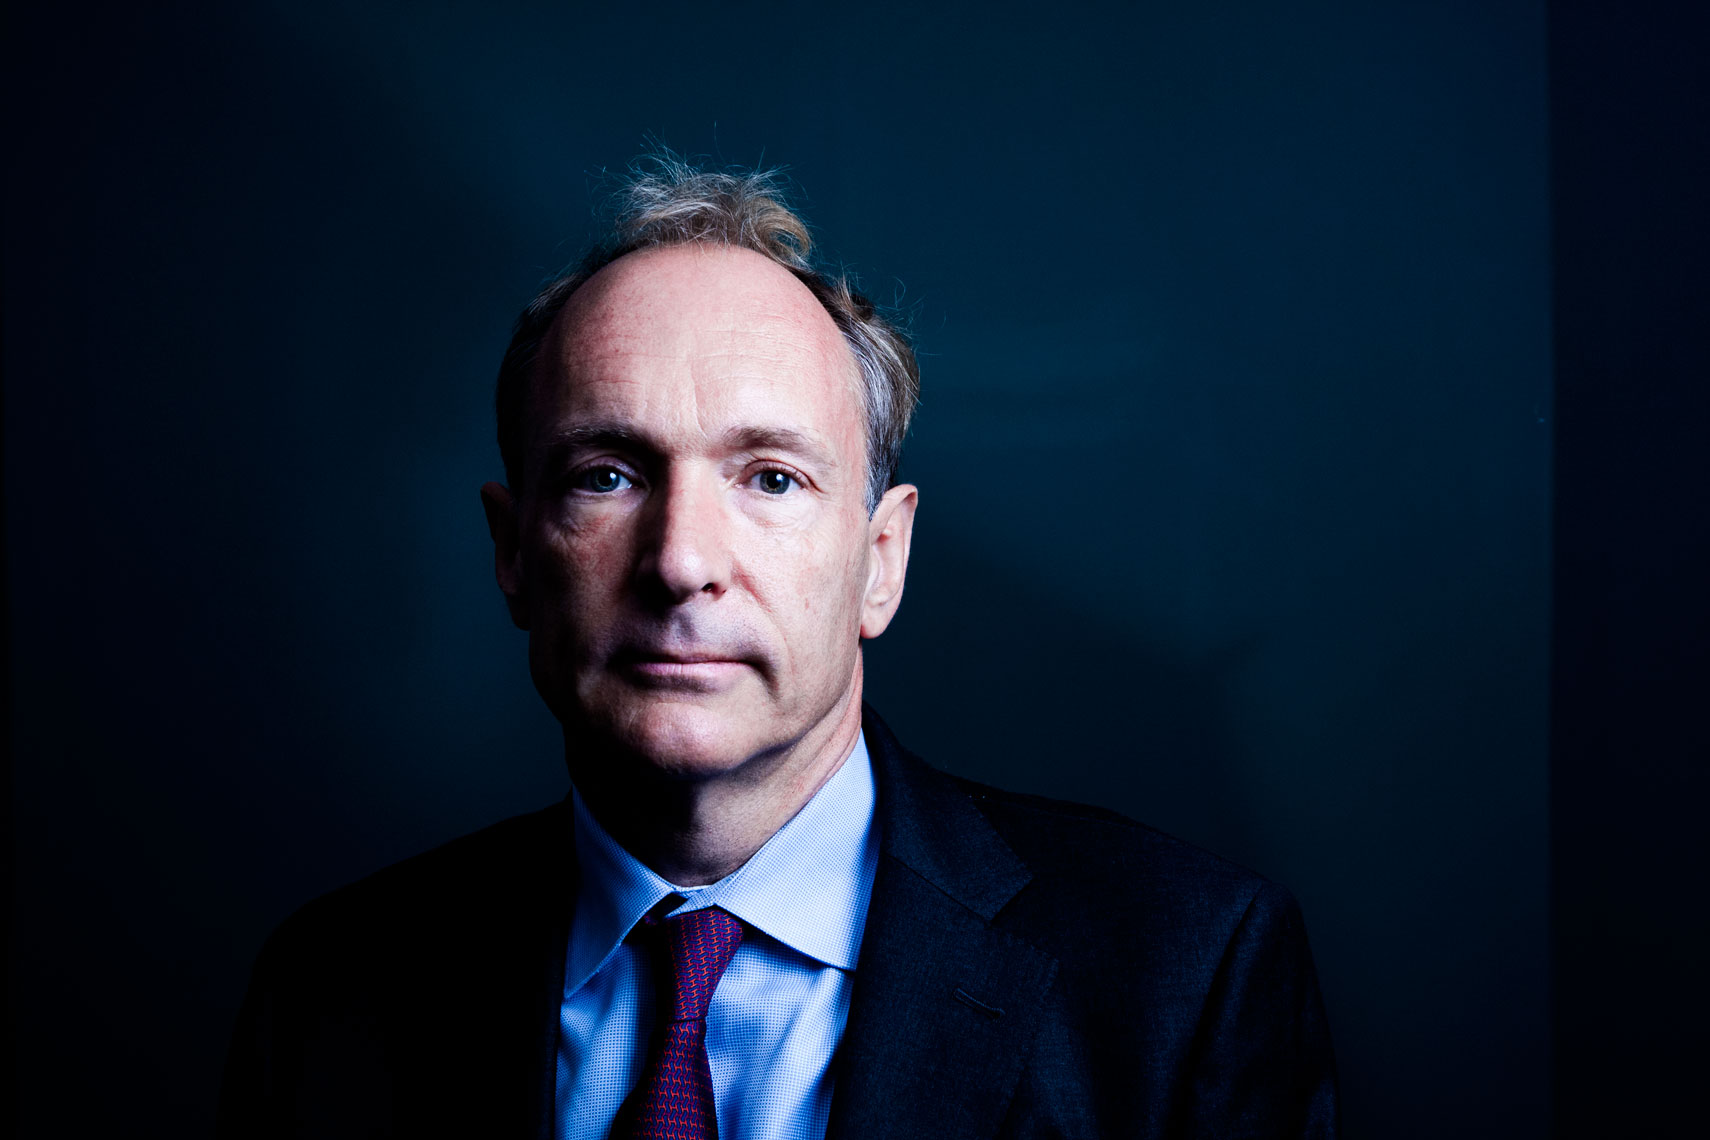 Sir Tim Berners-Lee by JonasVandall